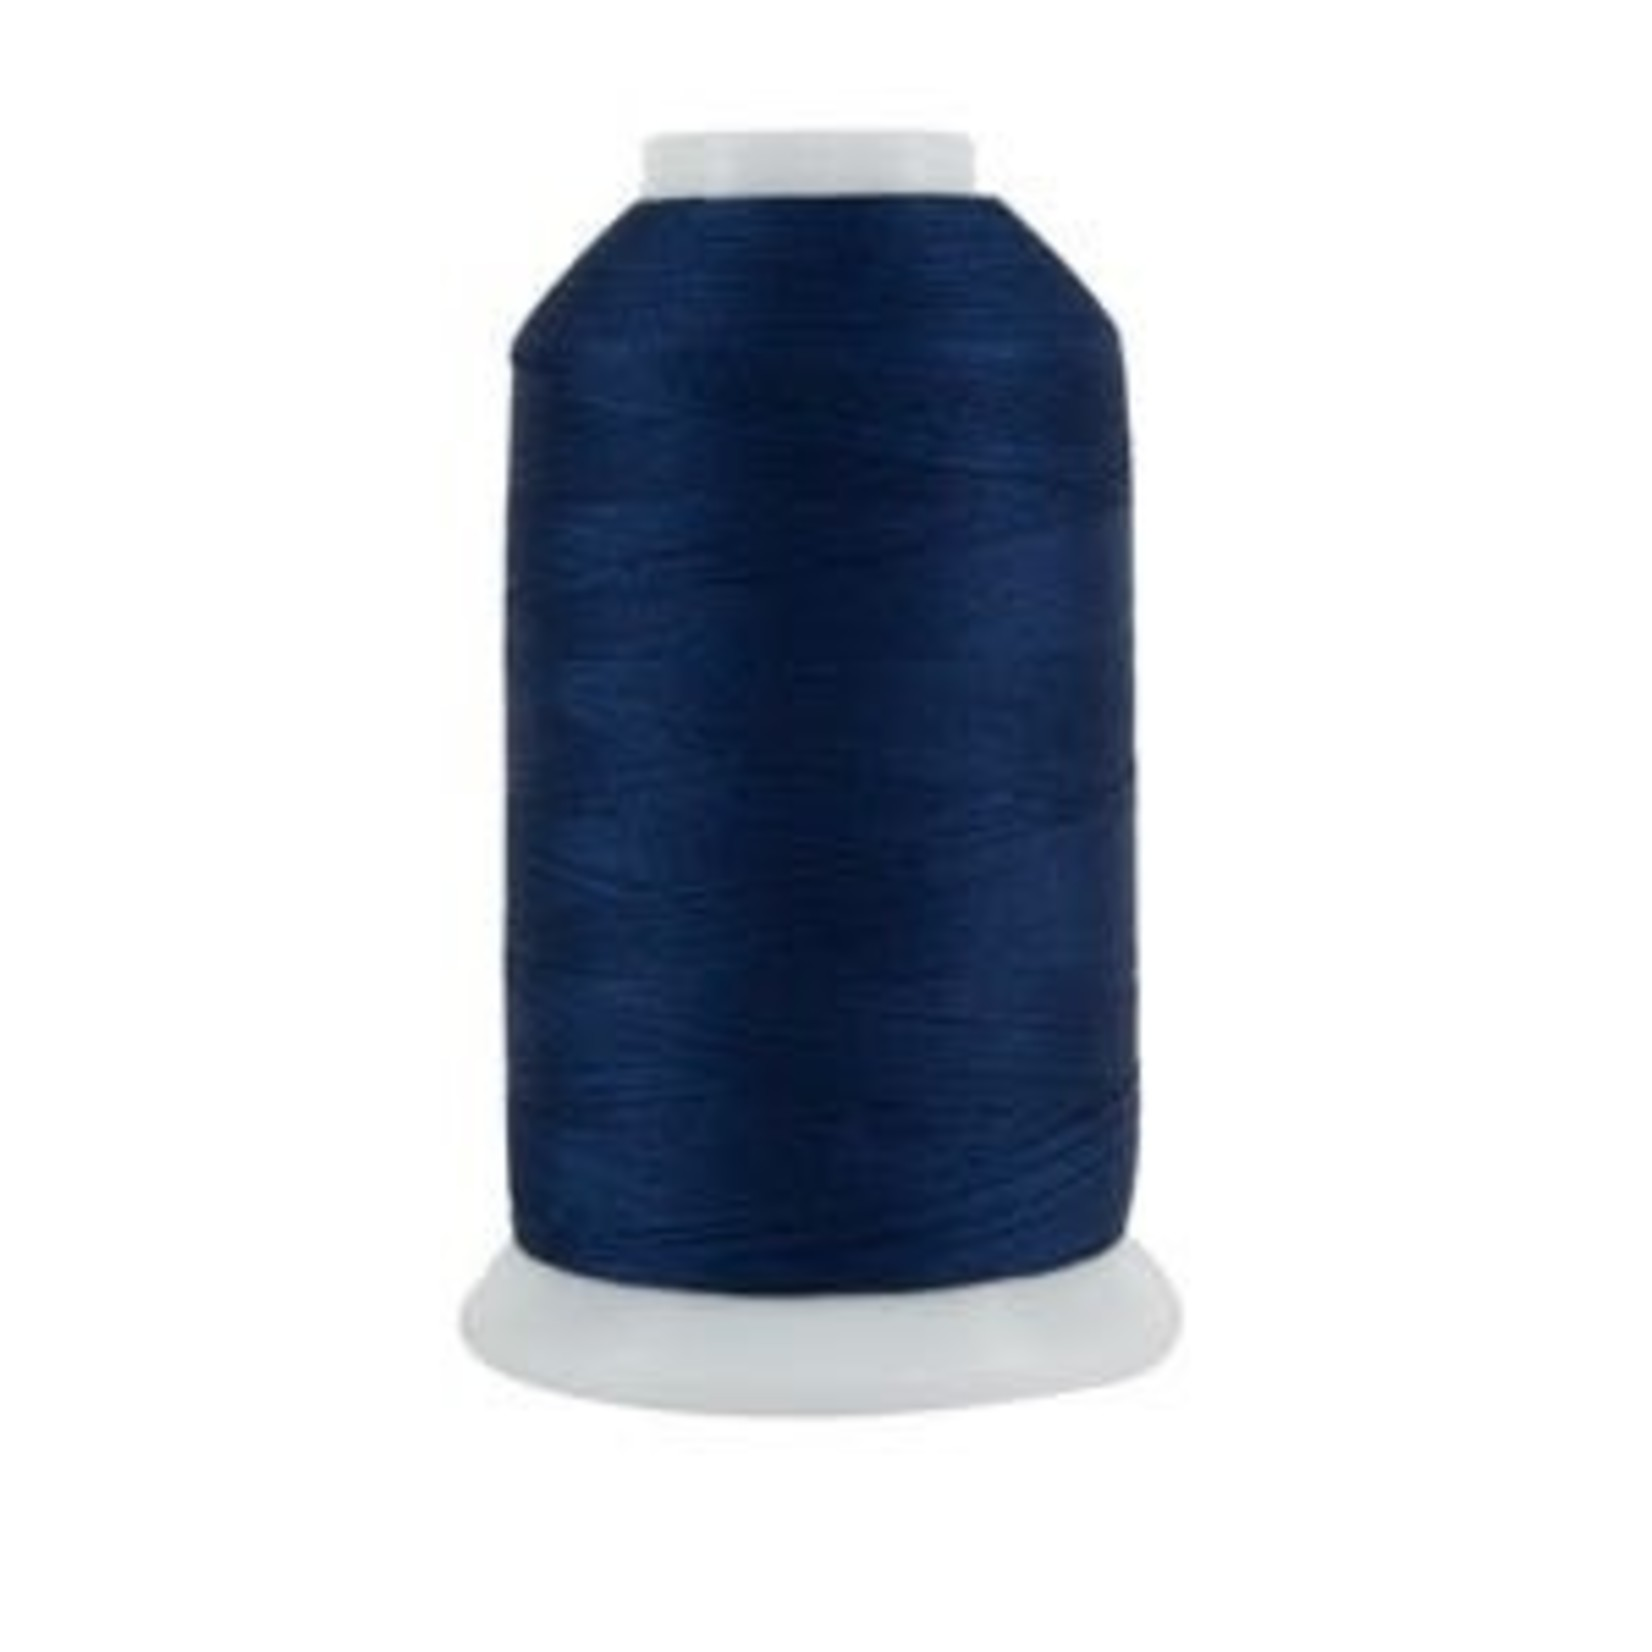 Superior Threads King Tut - #40 - 1828 m - 1032 In the Navy